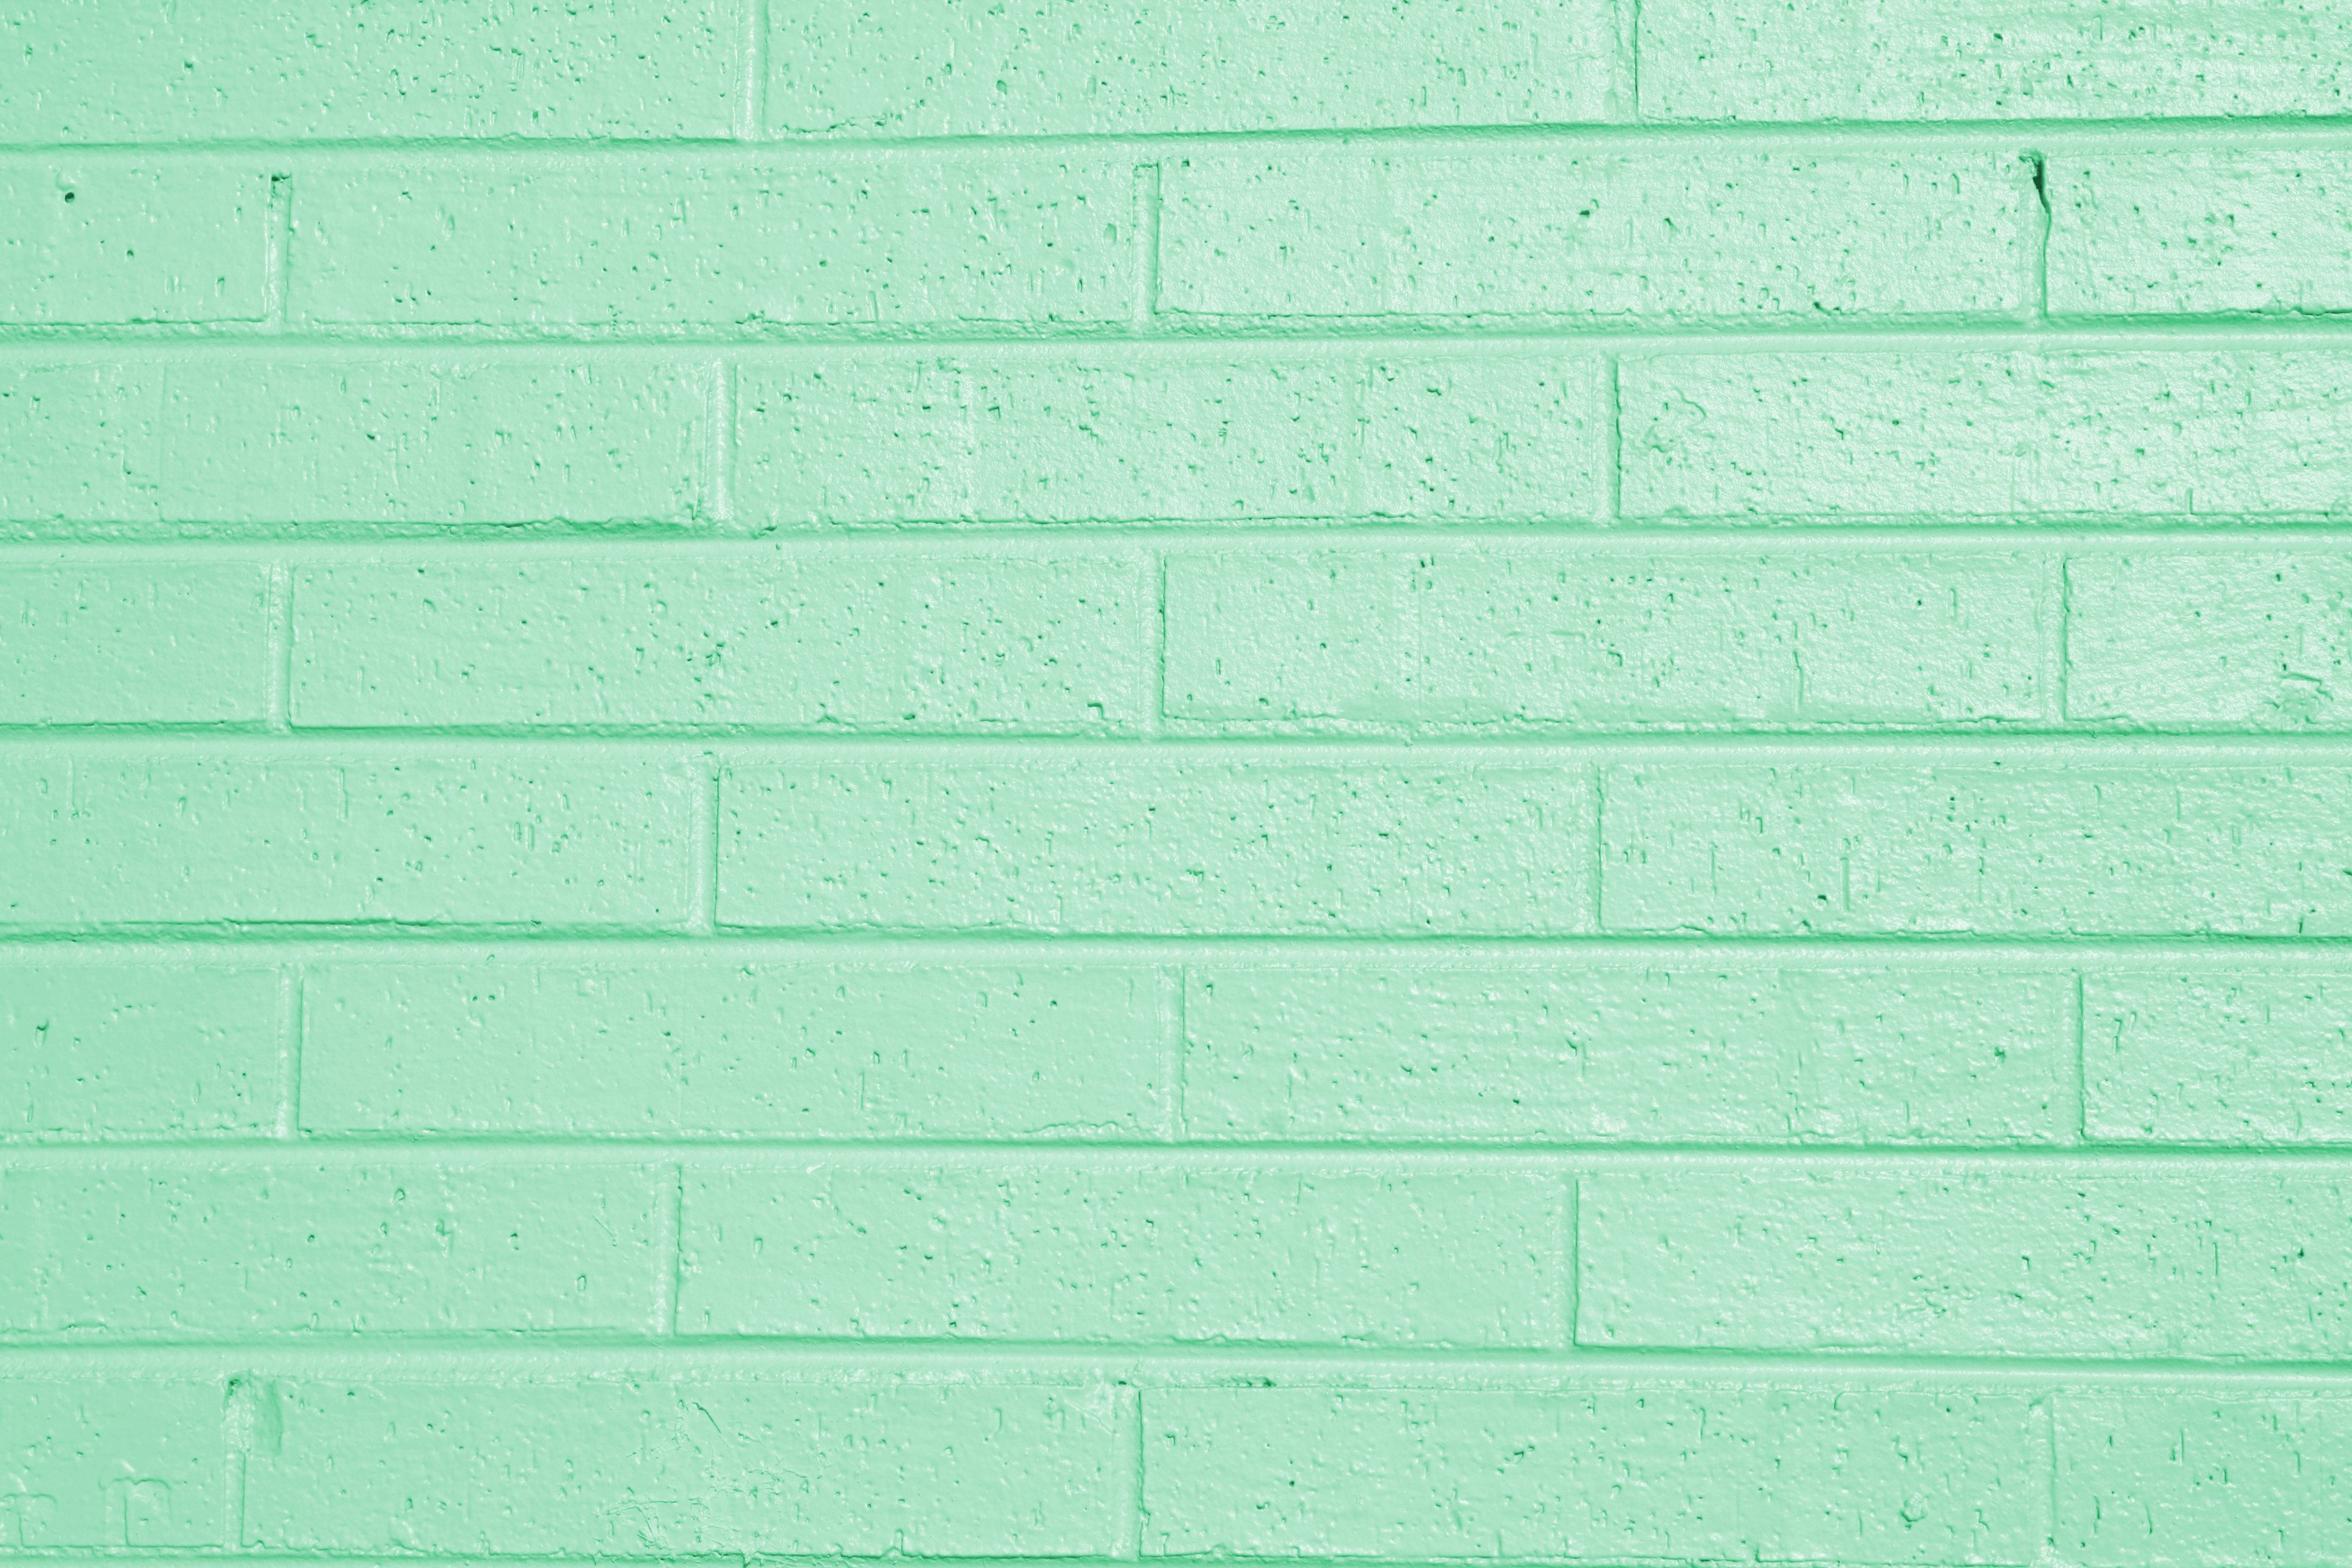 Pistachio Green Painted Brick Wall Texture Picture Free